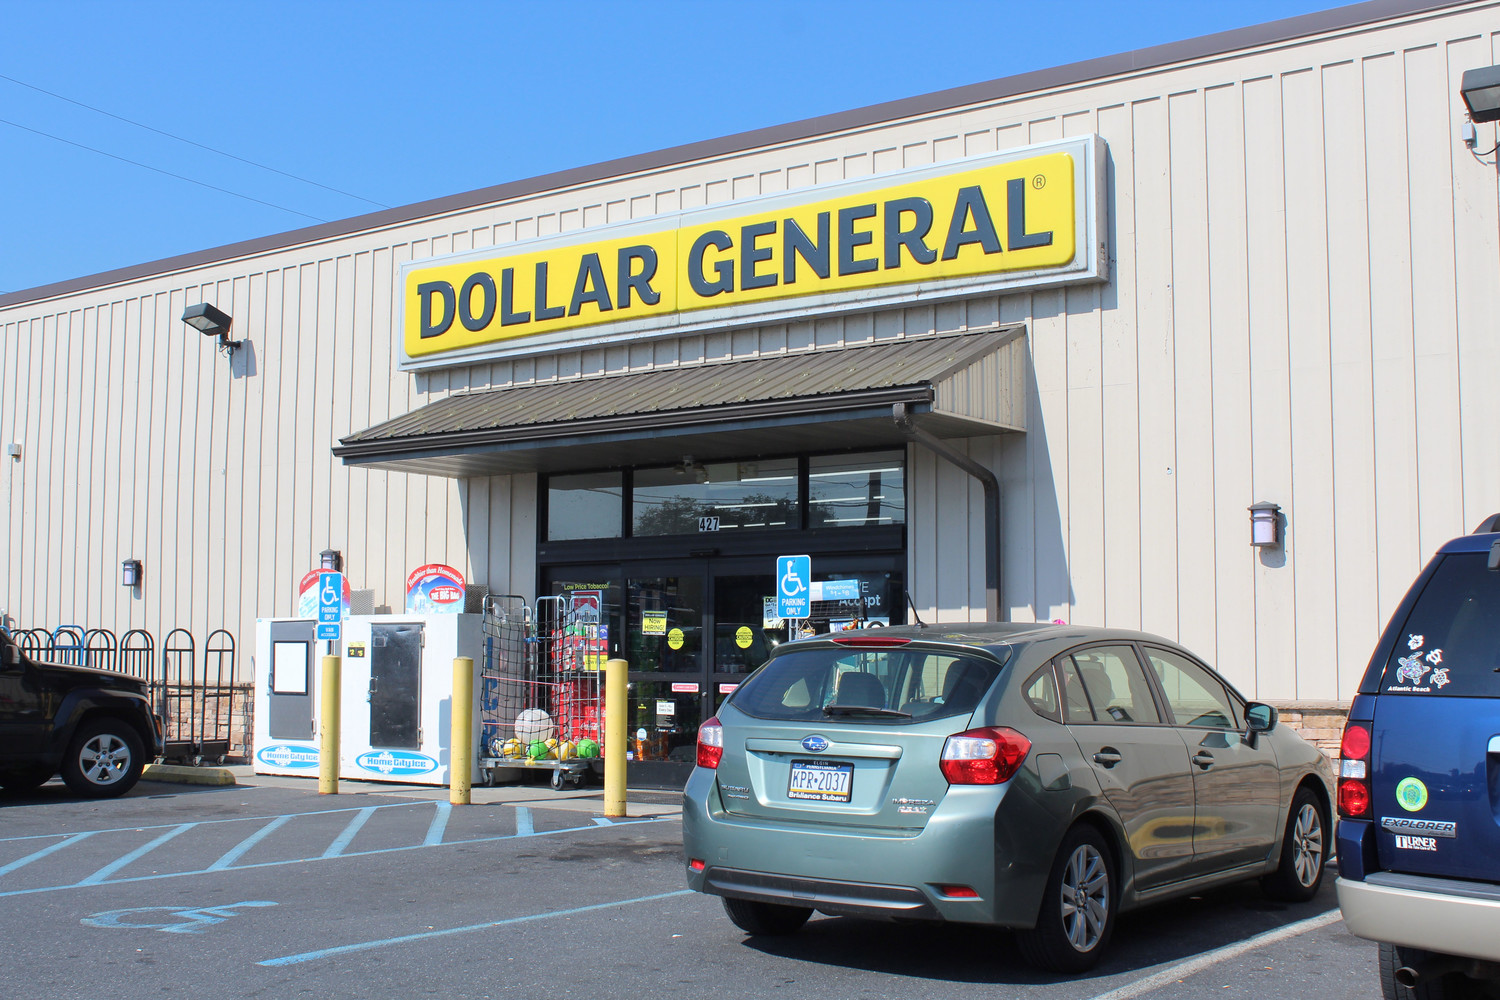 Dollar General, which has this location on Second Street in Highspire, wants to build another store in Londonderry Township.